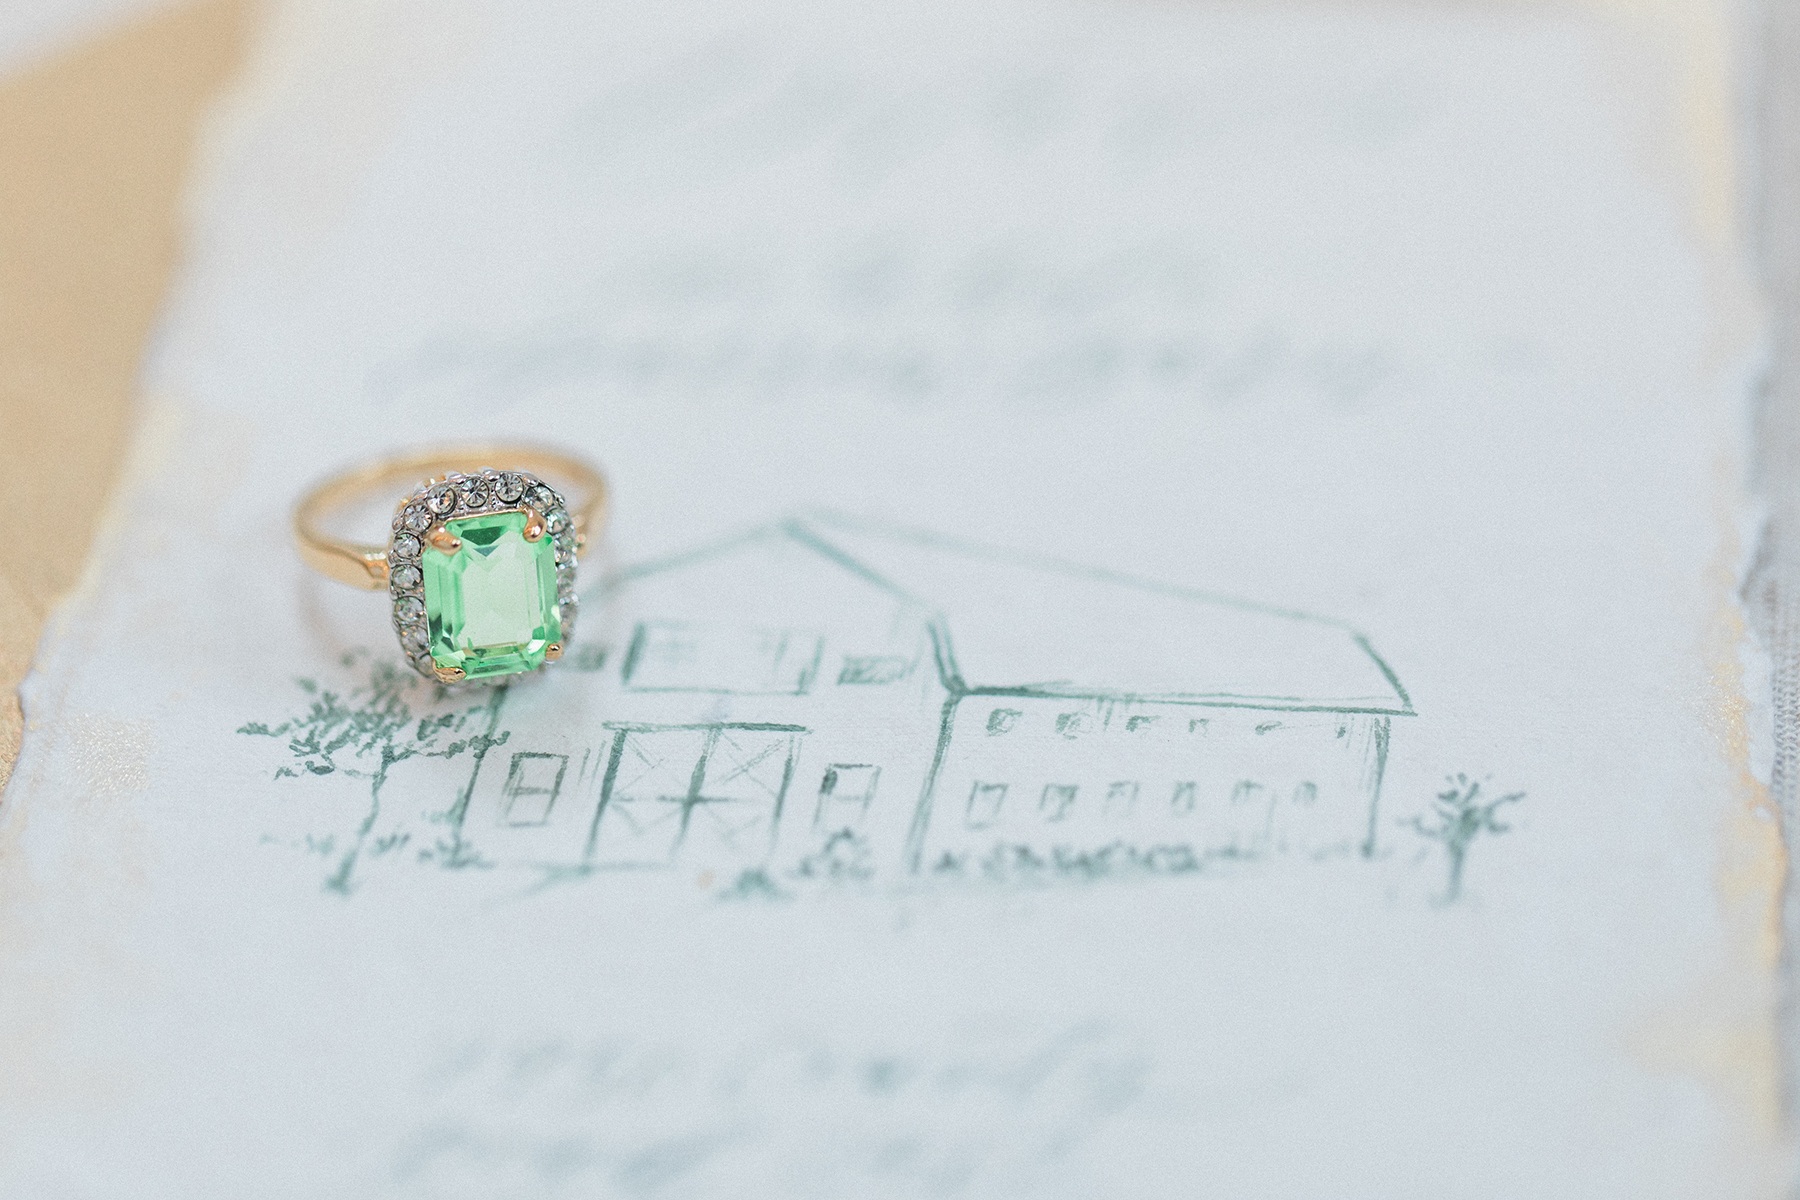 Dallas Wedding Venue | Trend We Love: Colorful Gemstones